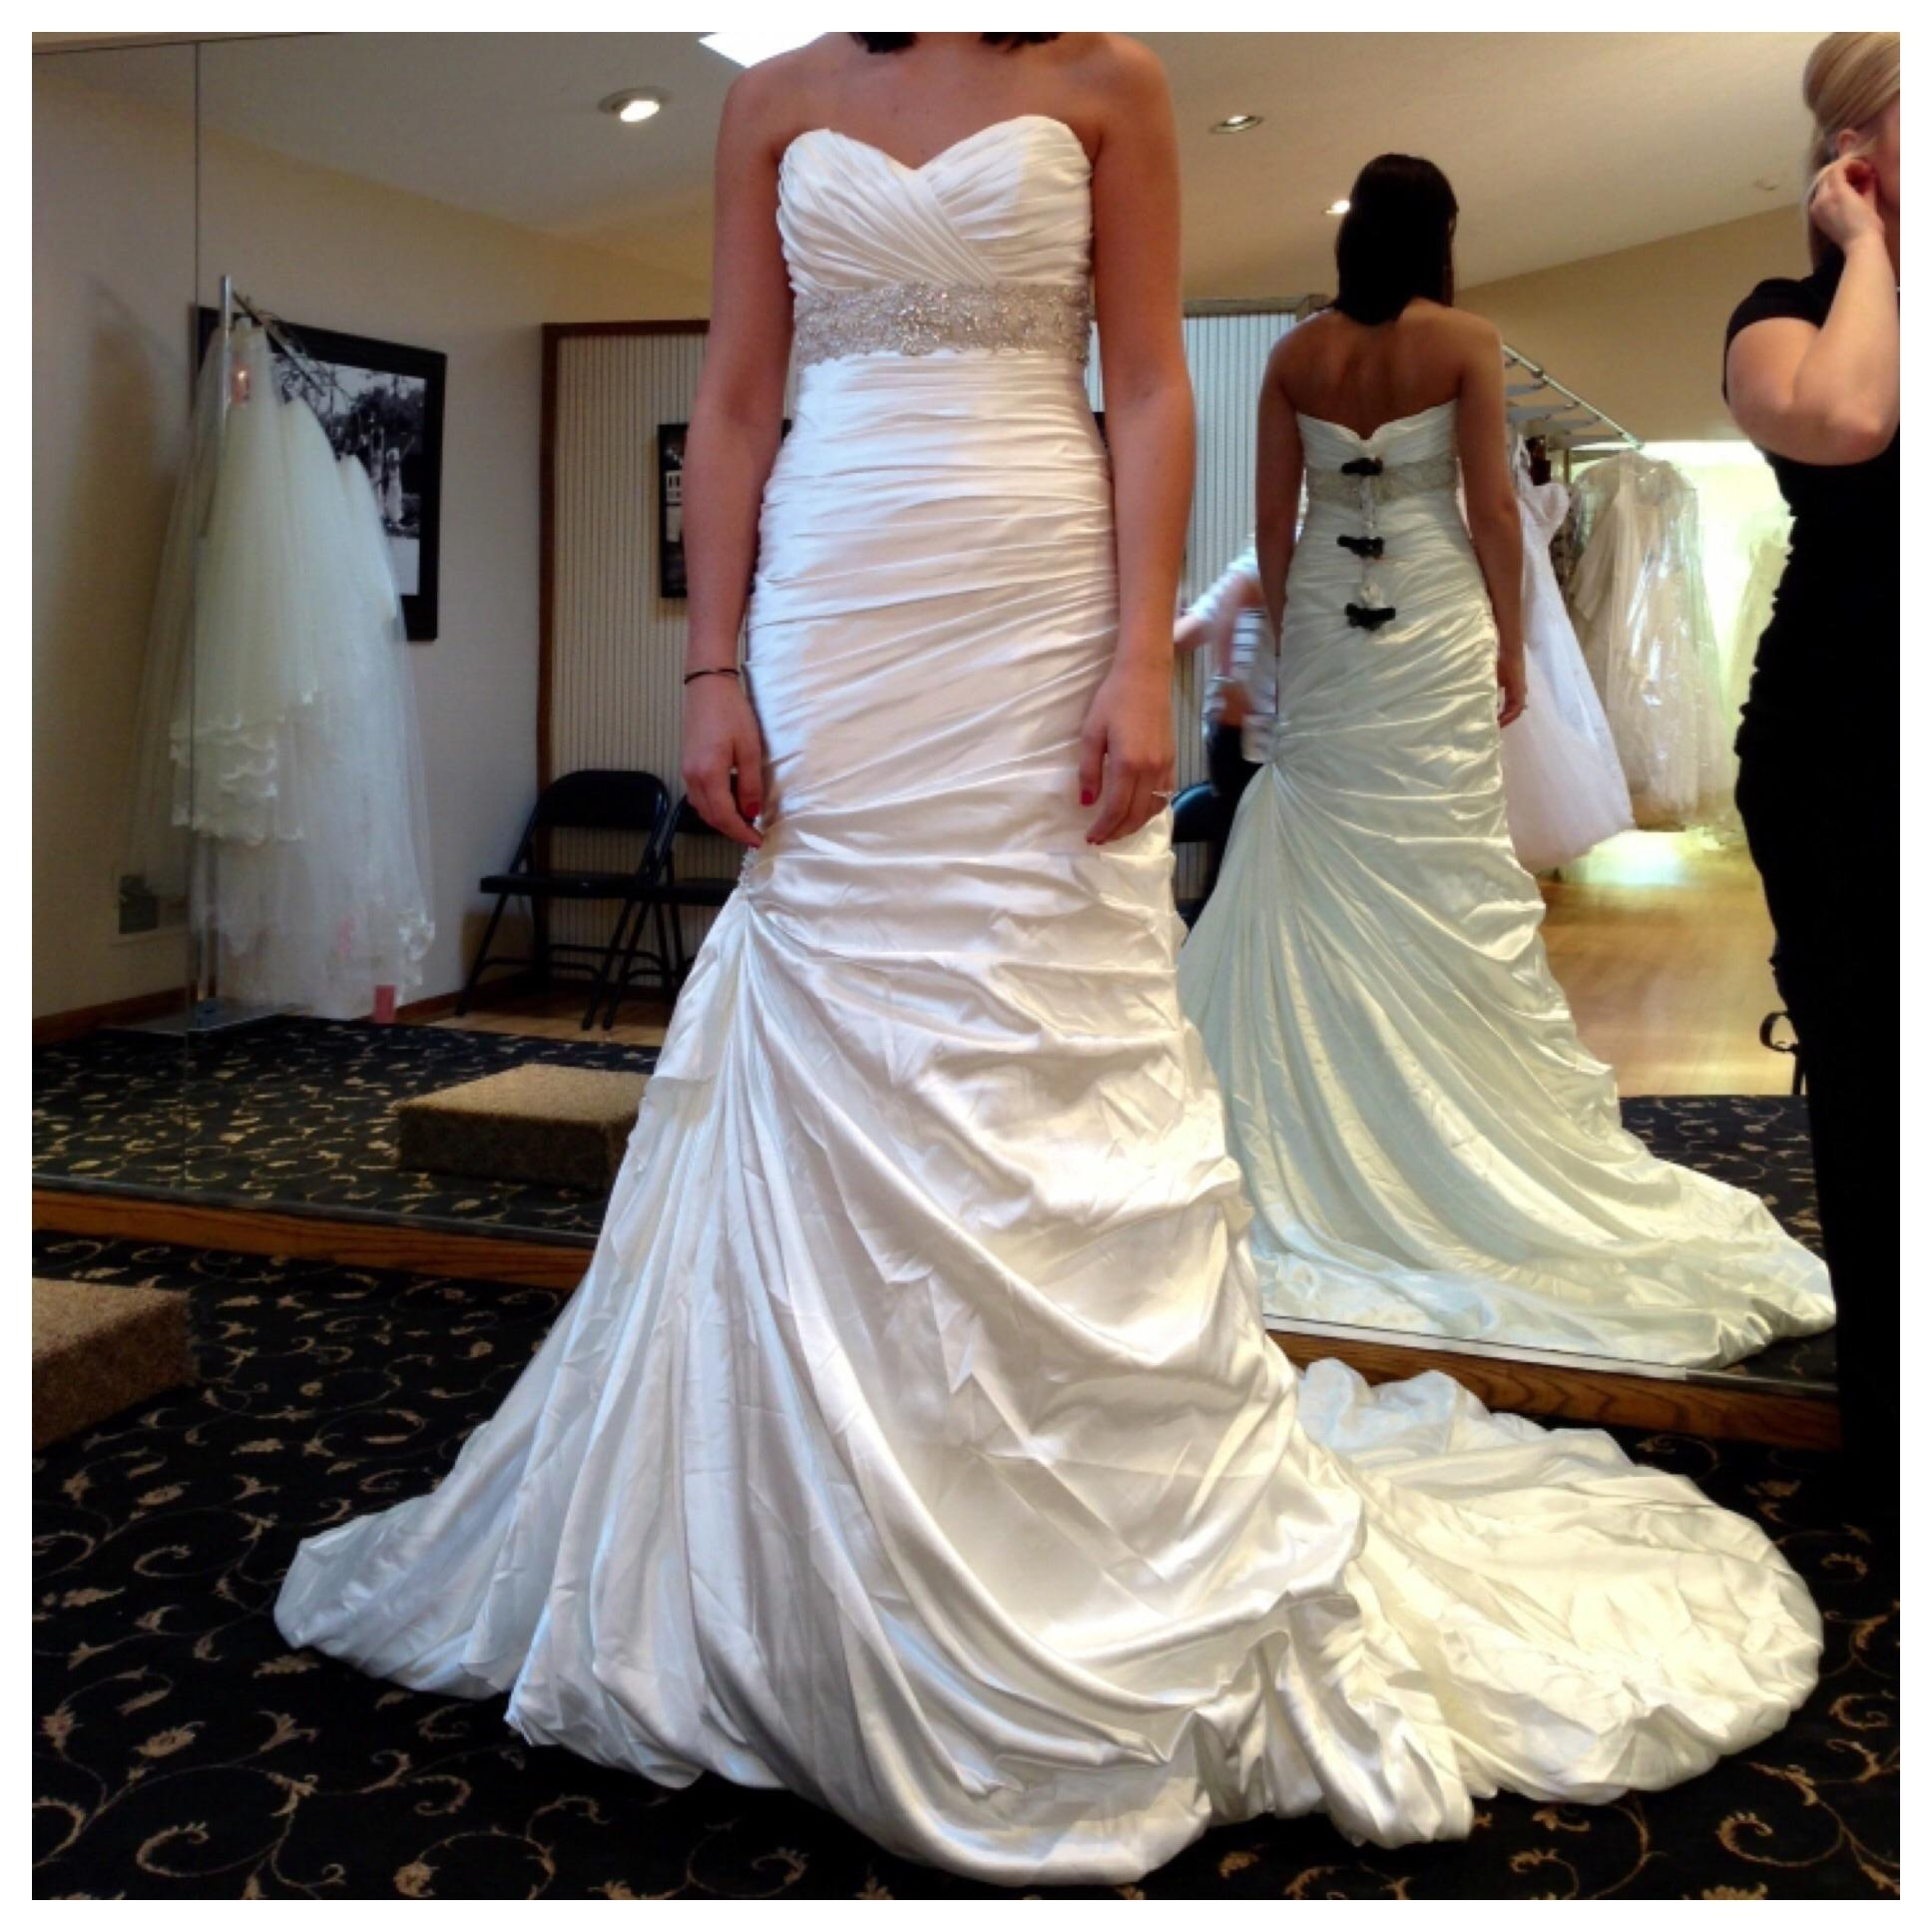 Used Wedding Dresses, Buy & Sell Your Wedding Dress | Tradesy